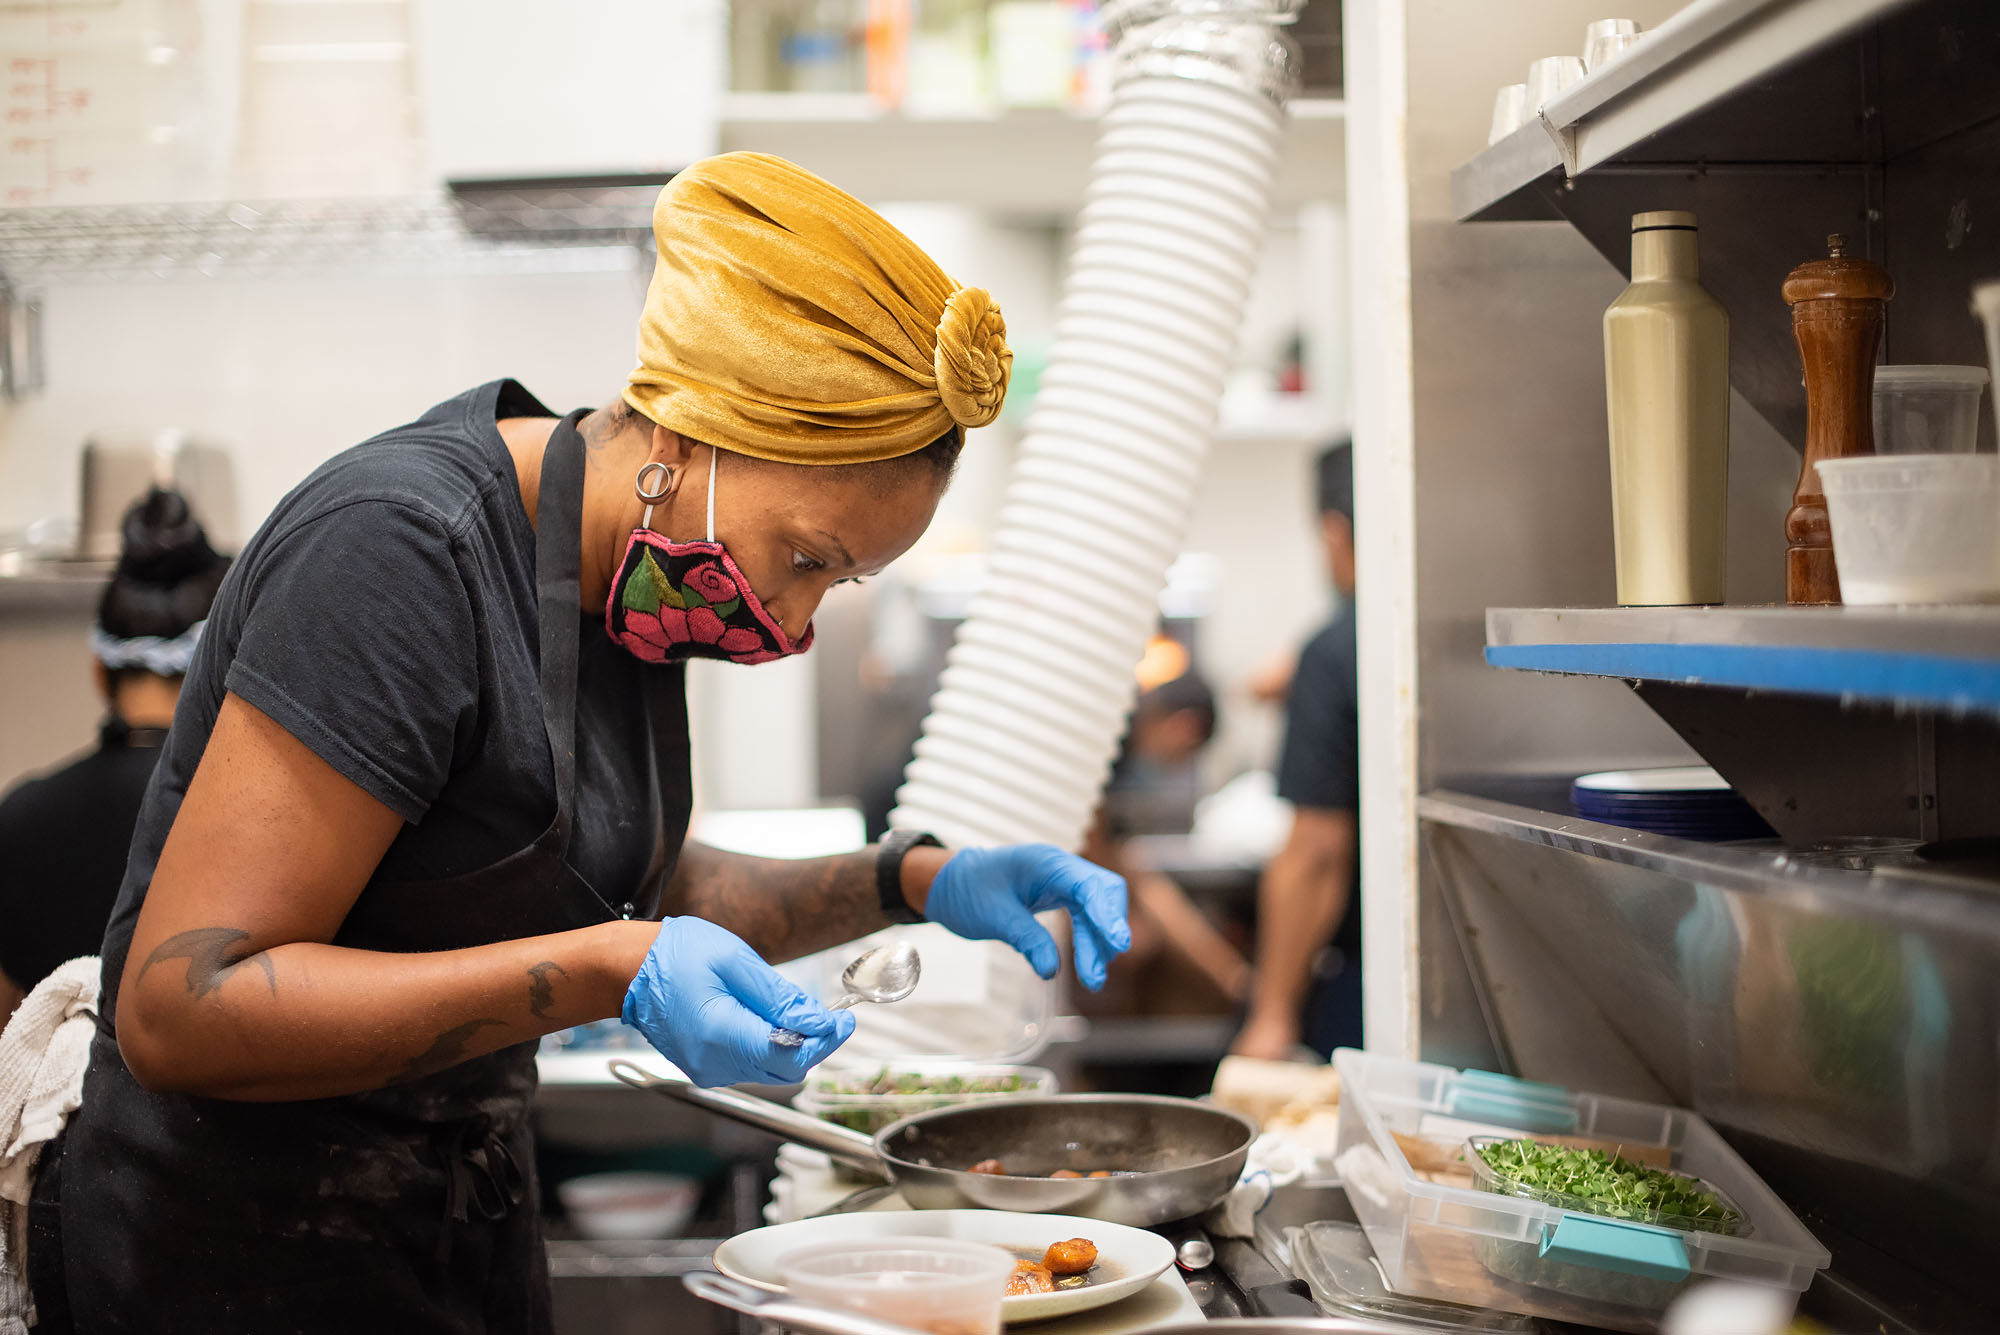 A female chef in yellow head scarf prepares a meal inside of a kitchen, while wearing a mask.